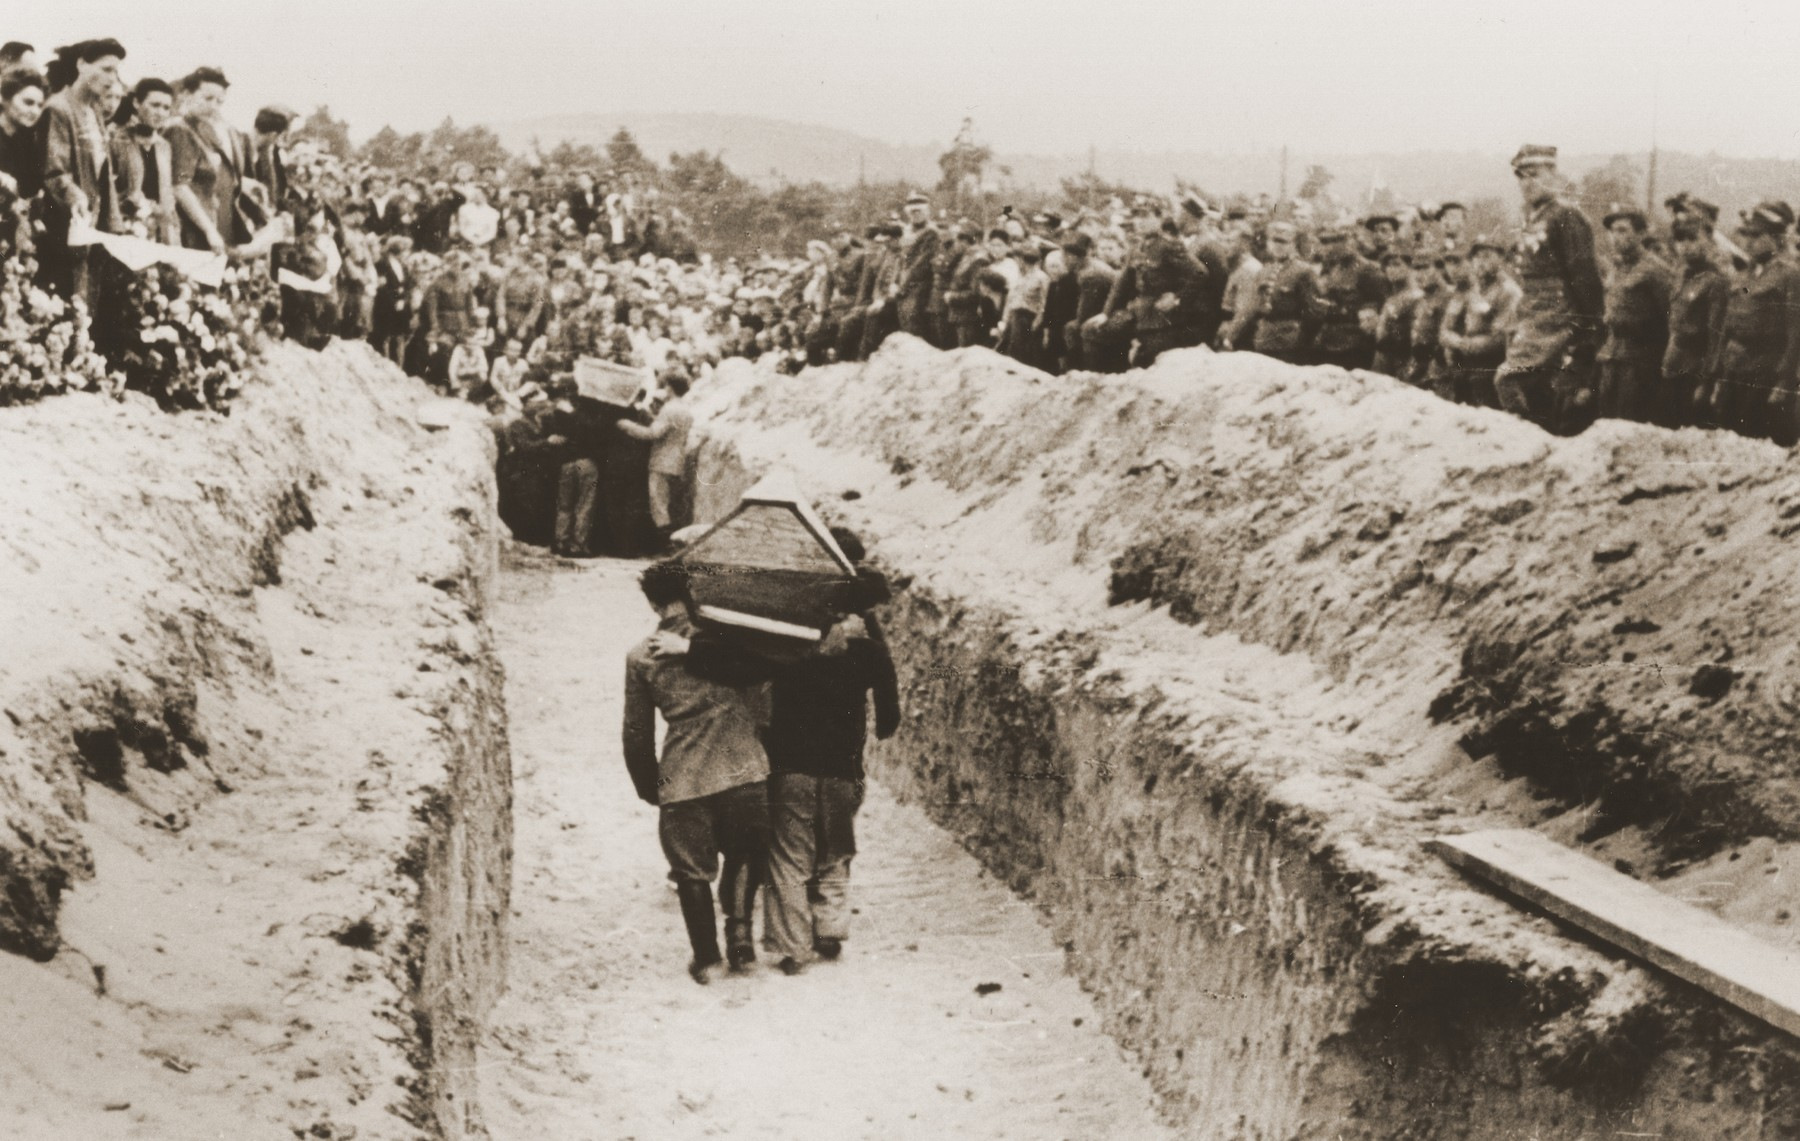 Pallbearers carrying the victims of the Kielce pogrom, place the coffins in a mass grave at the Jewish cemetery.